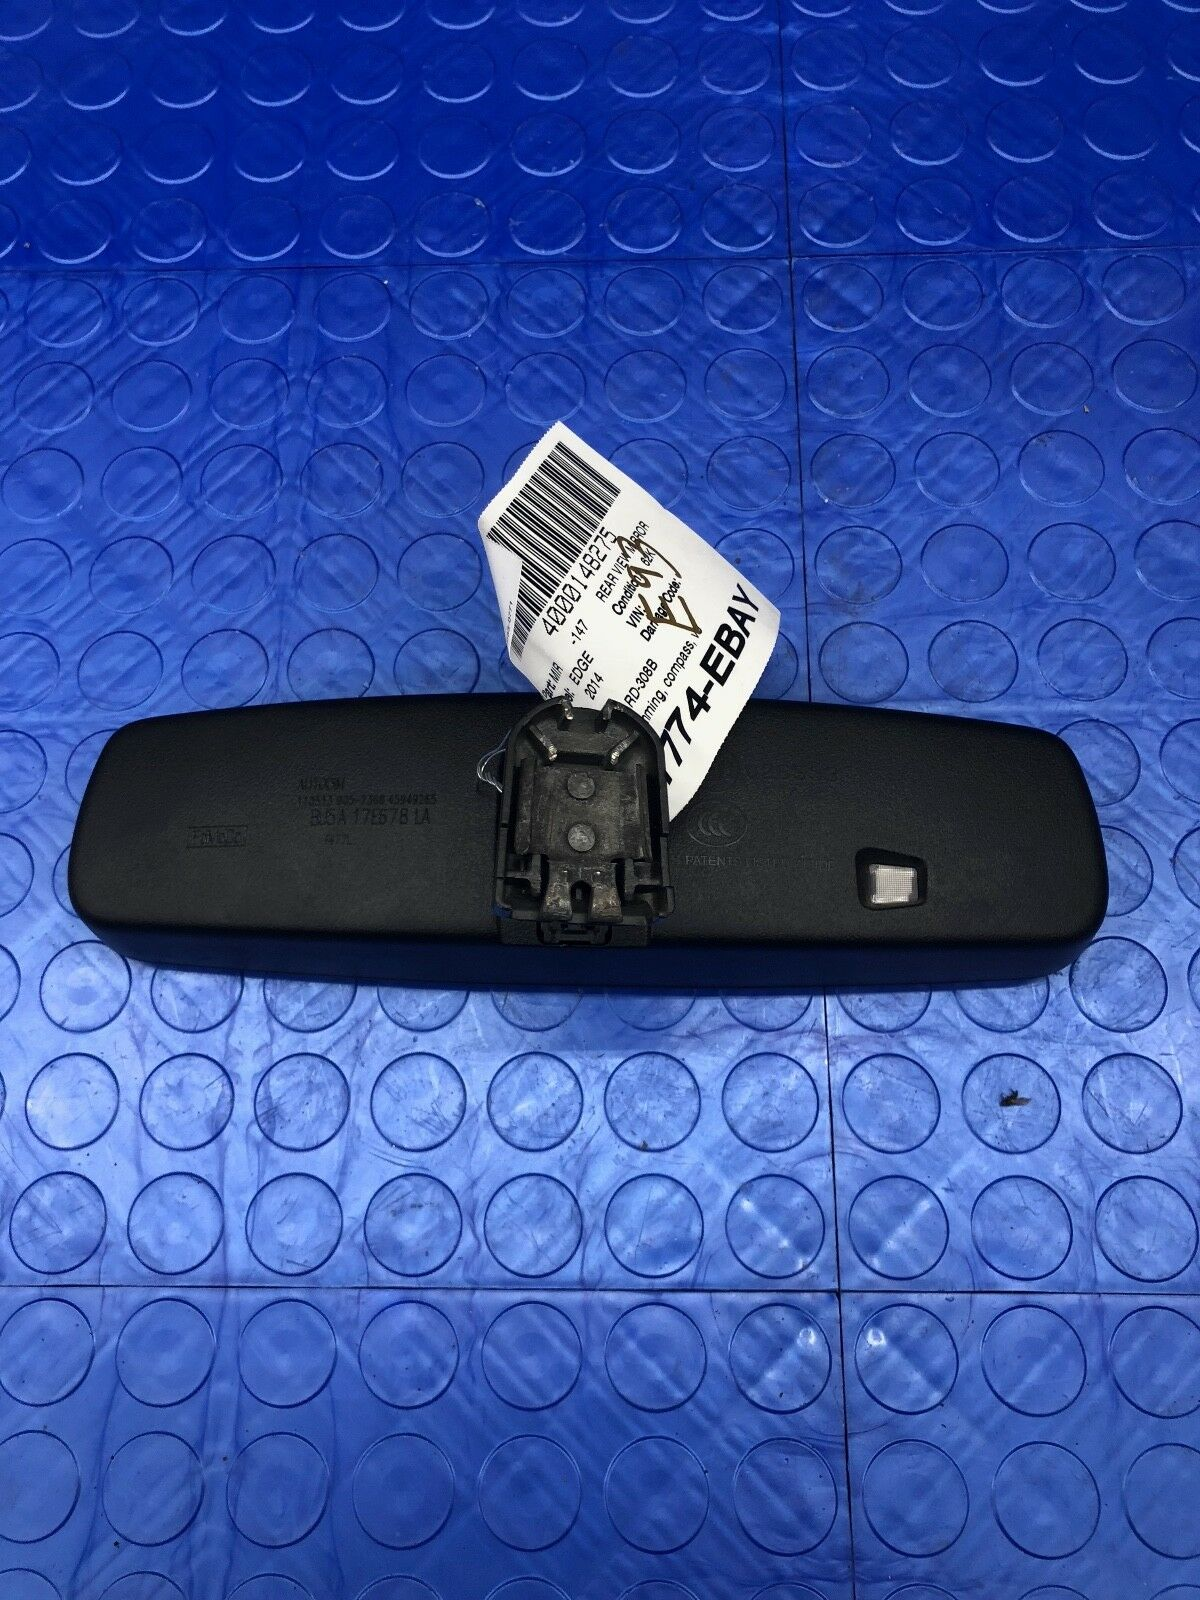 OE Ford Edge GNTX Part 931 Auto Dimming Interior Rearview Mirror BU5A-17E678-LA Does not apply